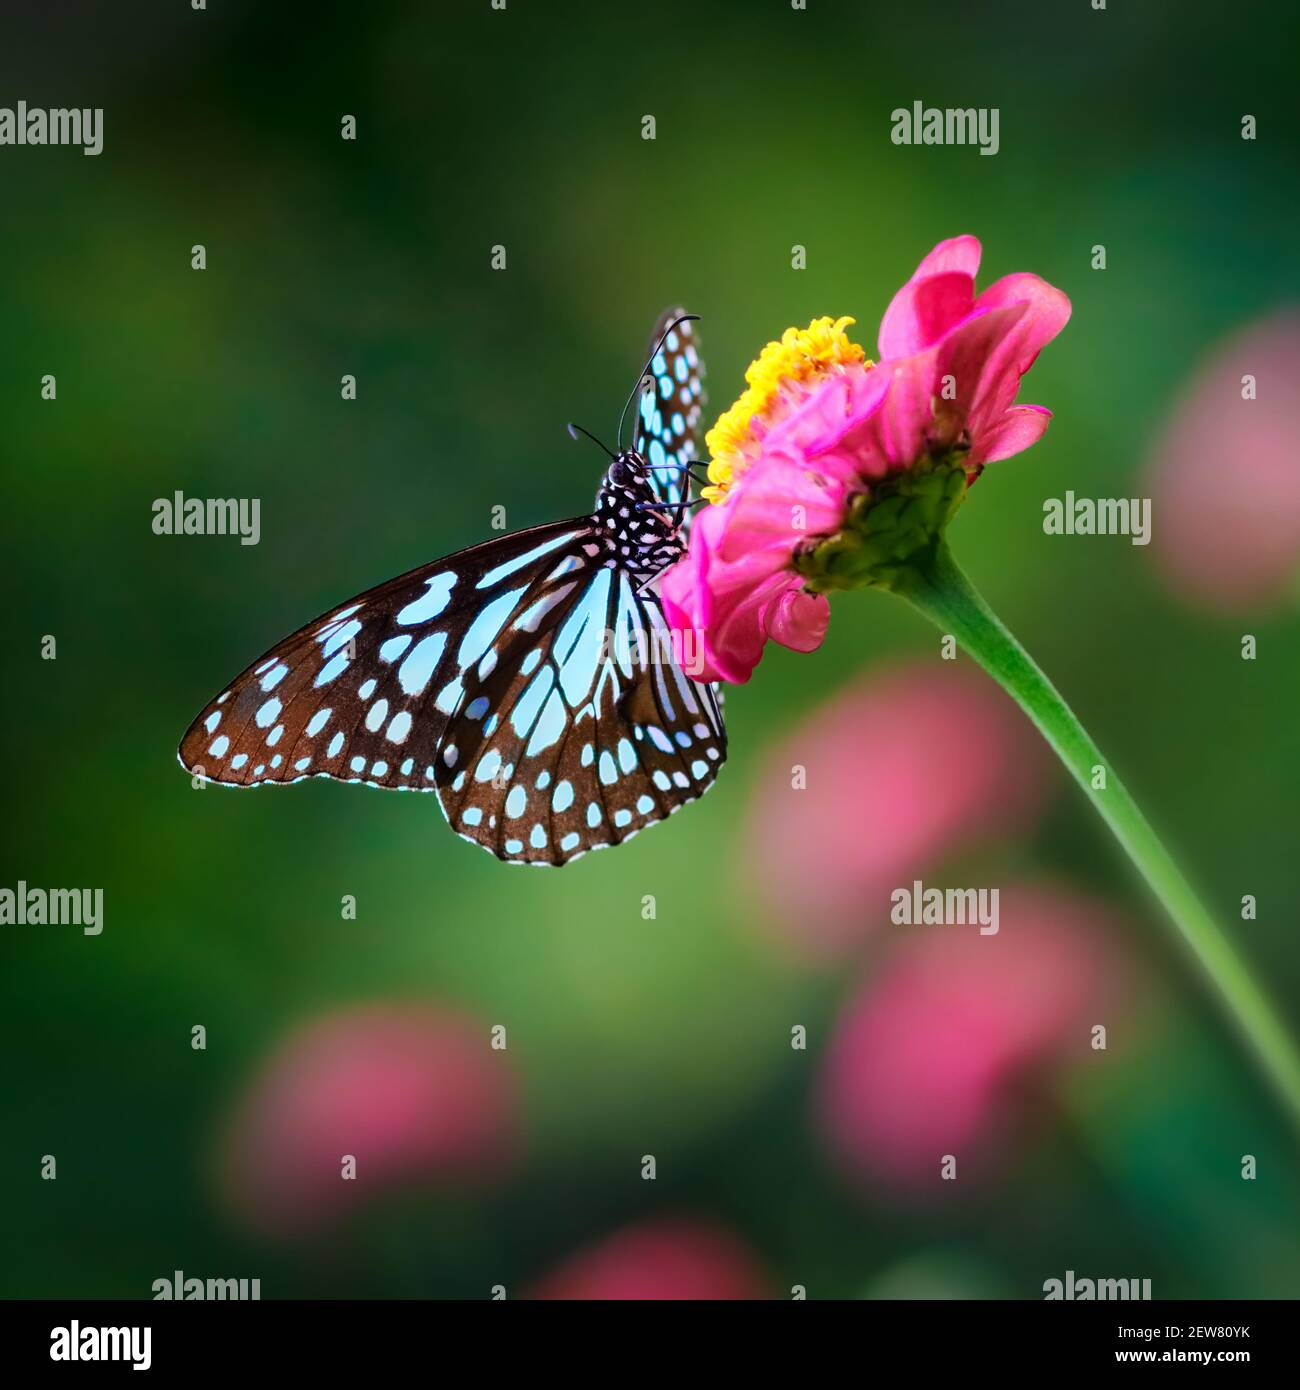 Butterfly Blue Tiger or Danaid Tirumala limniace on a pink zinnia flower with dark green colorful blurred bokeh background Stock Photo